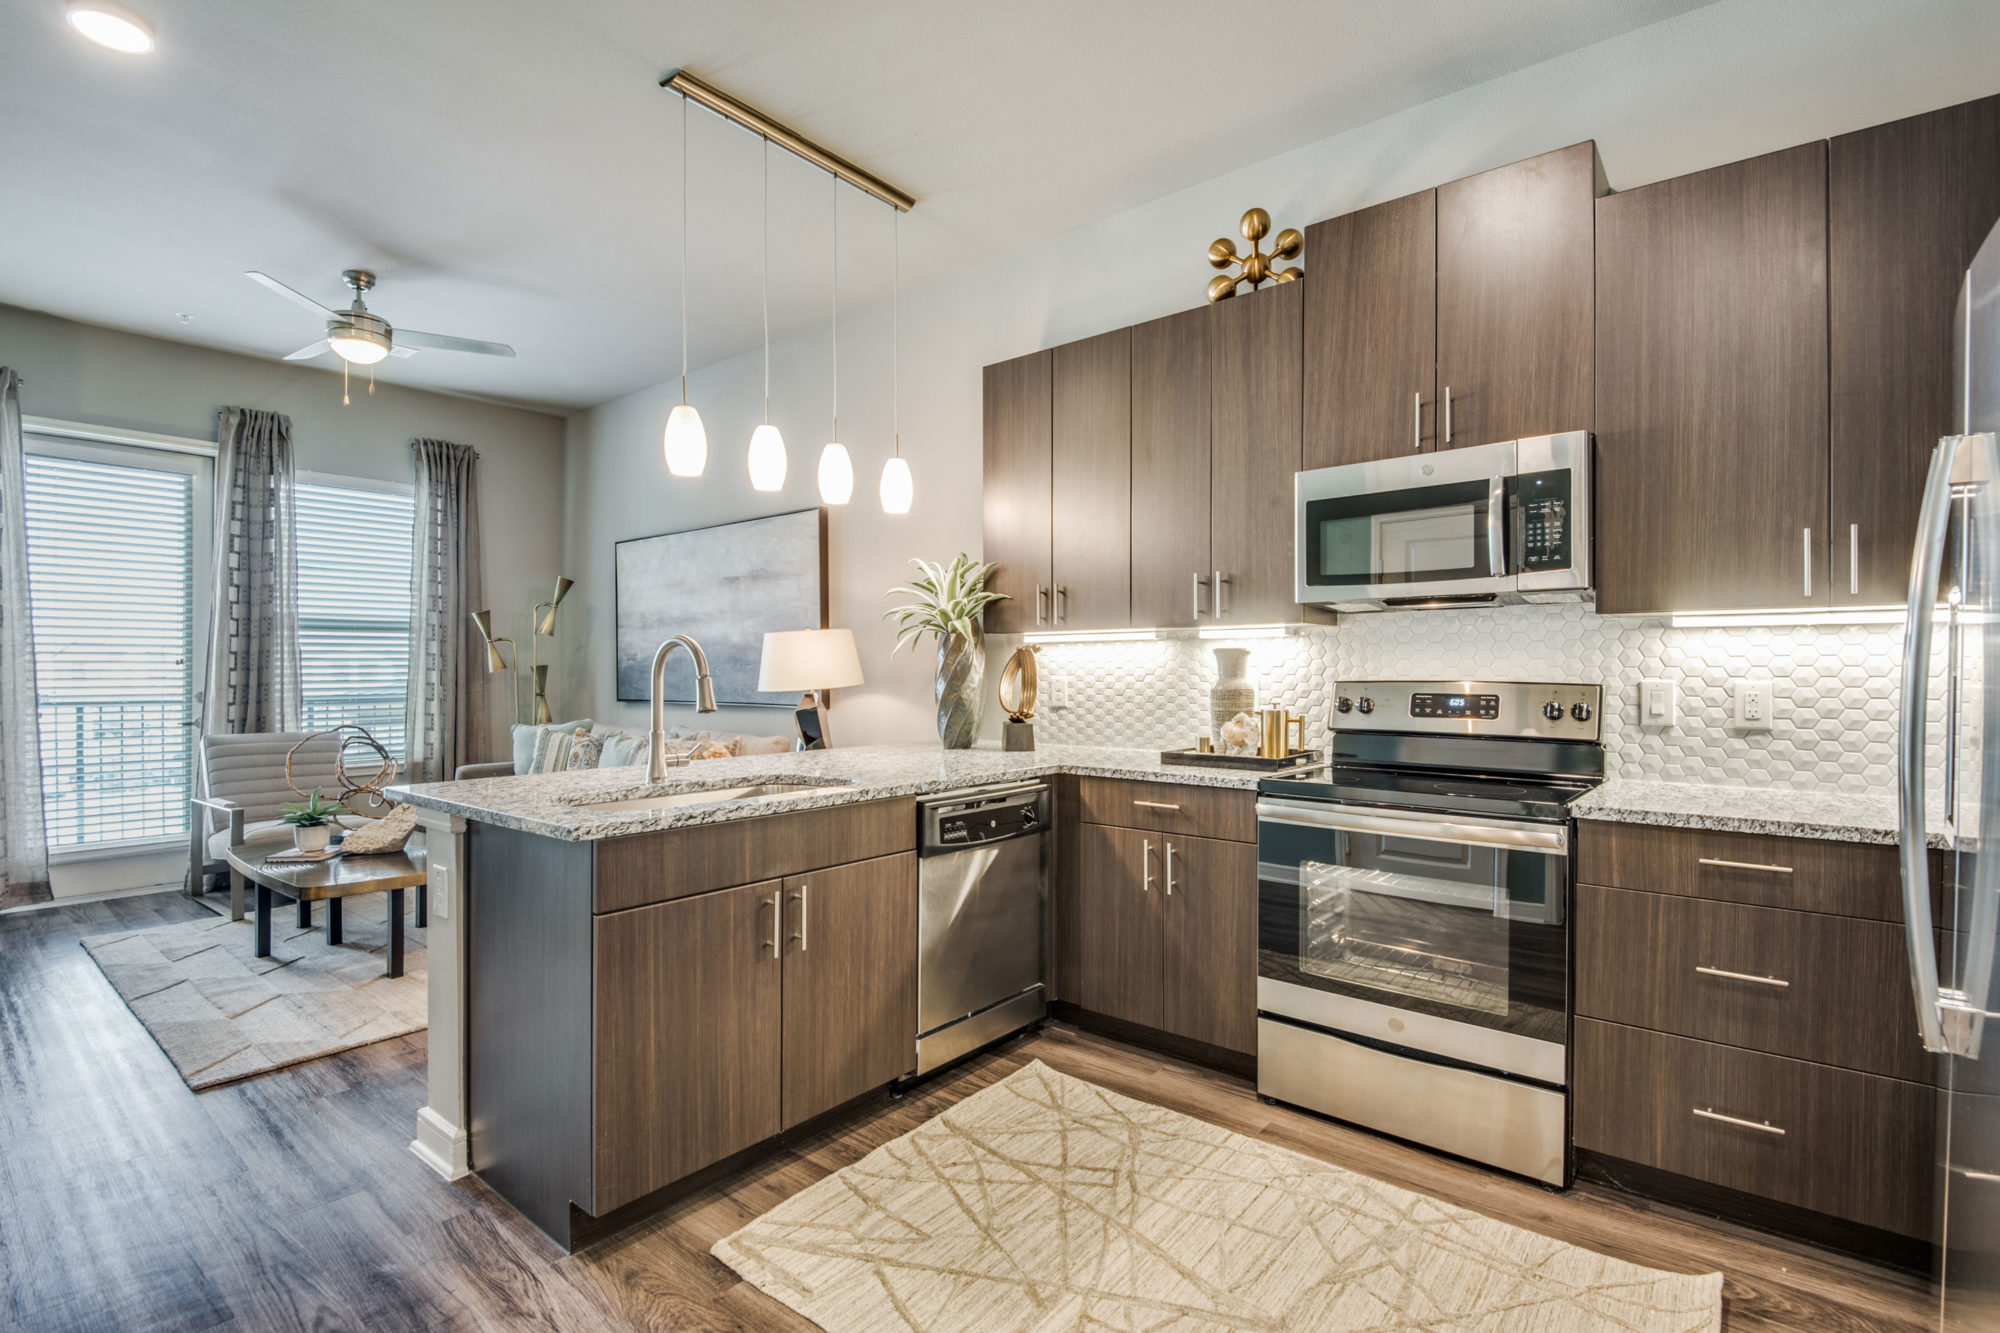 l-shaped kitchen with wood cabinets, stove, microwave, pendant lighting over bar, and single basin sink